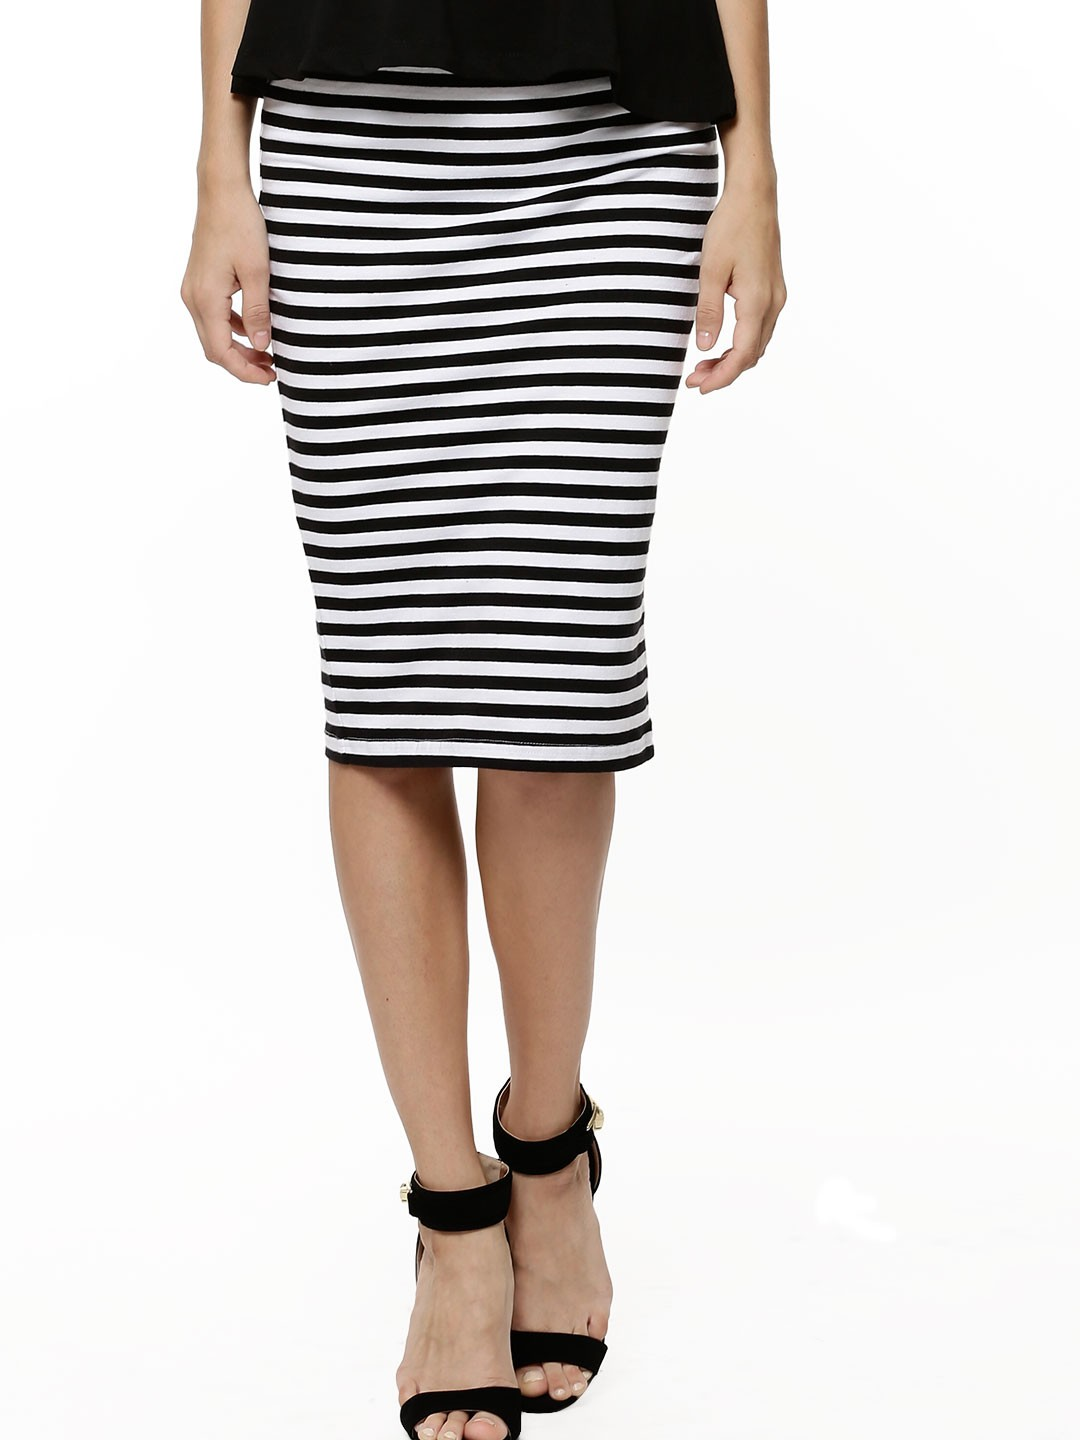 Buy KOOVS Striped Pencil Skirt For Women - Women's Multi Pencil ...